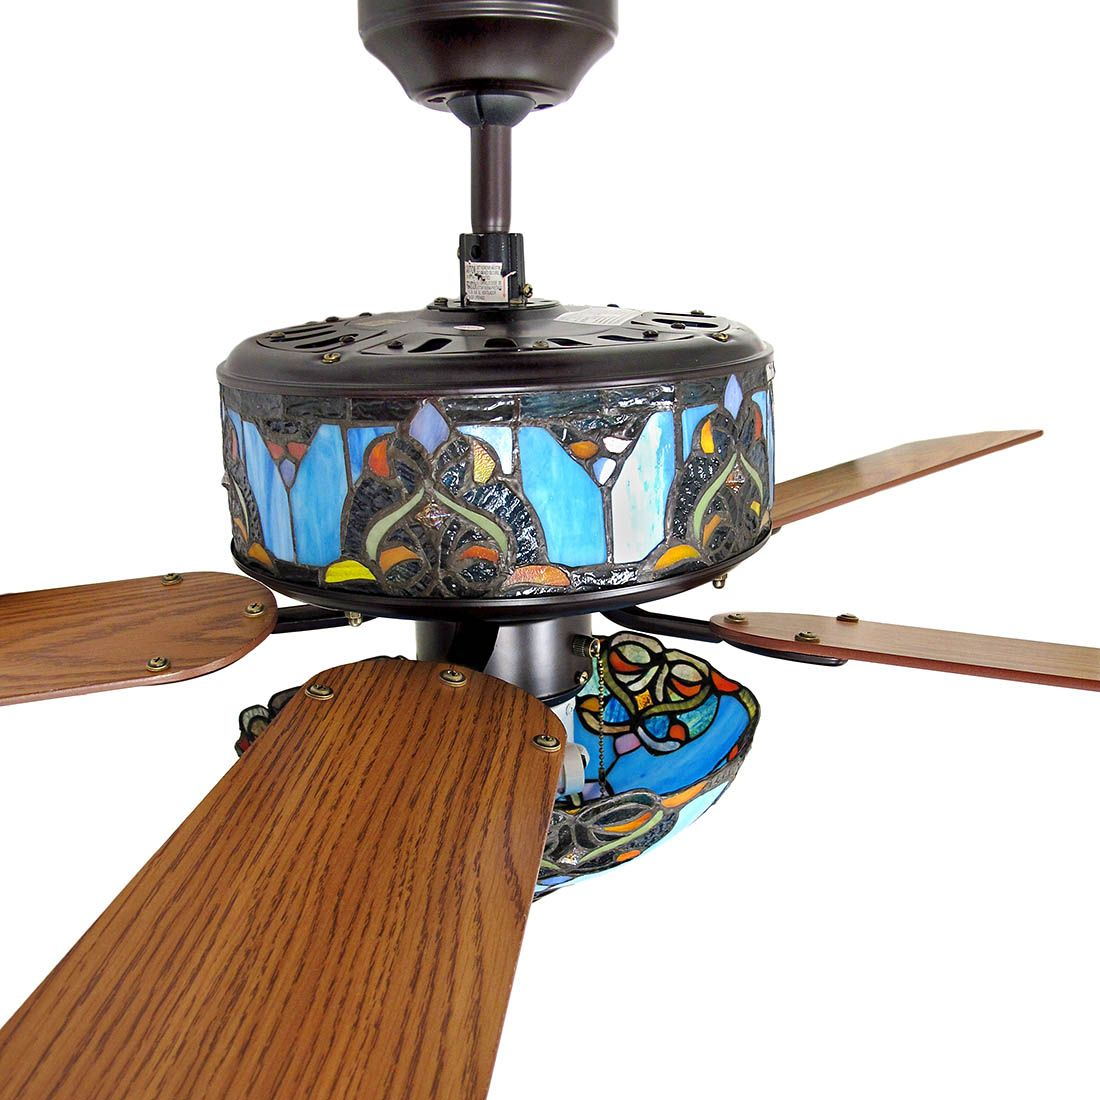 Ceiling fans with stained glass details about stained glass ceiling fans with stained glass details about stained glass ceiling fan and light shades of blue 48 in aloadofball Images